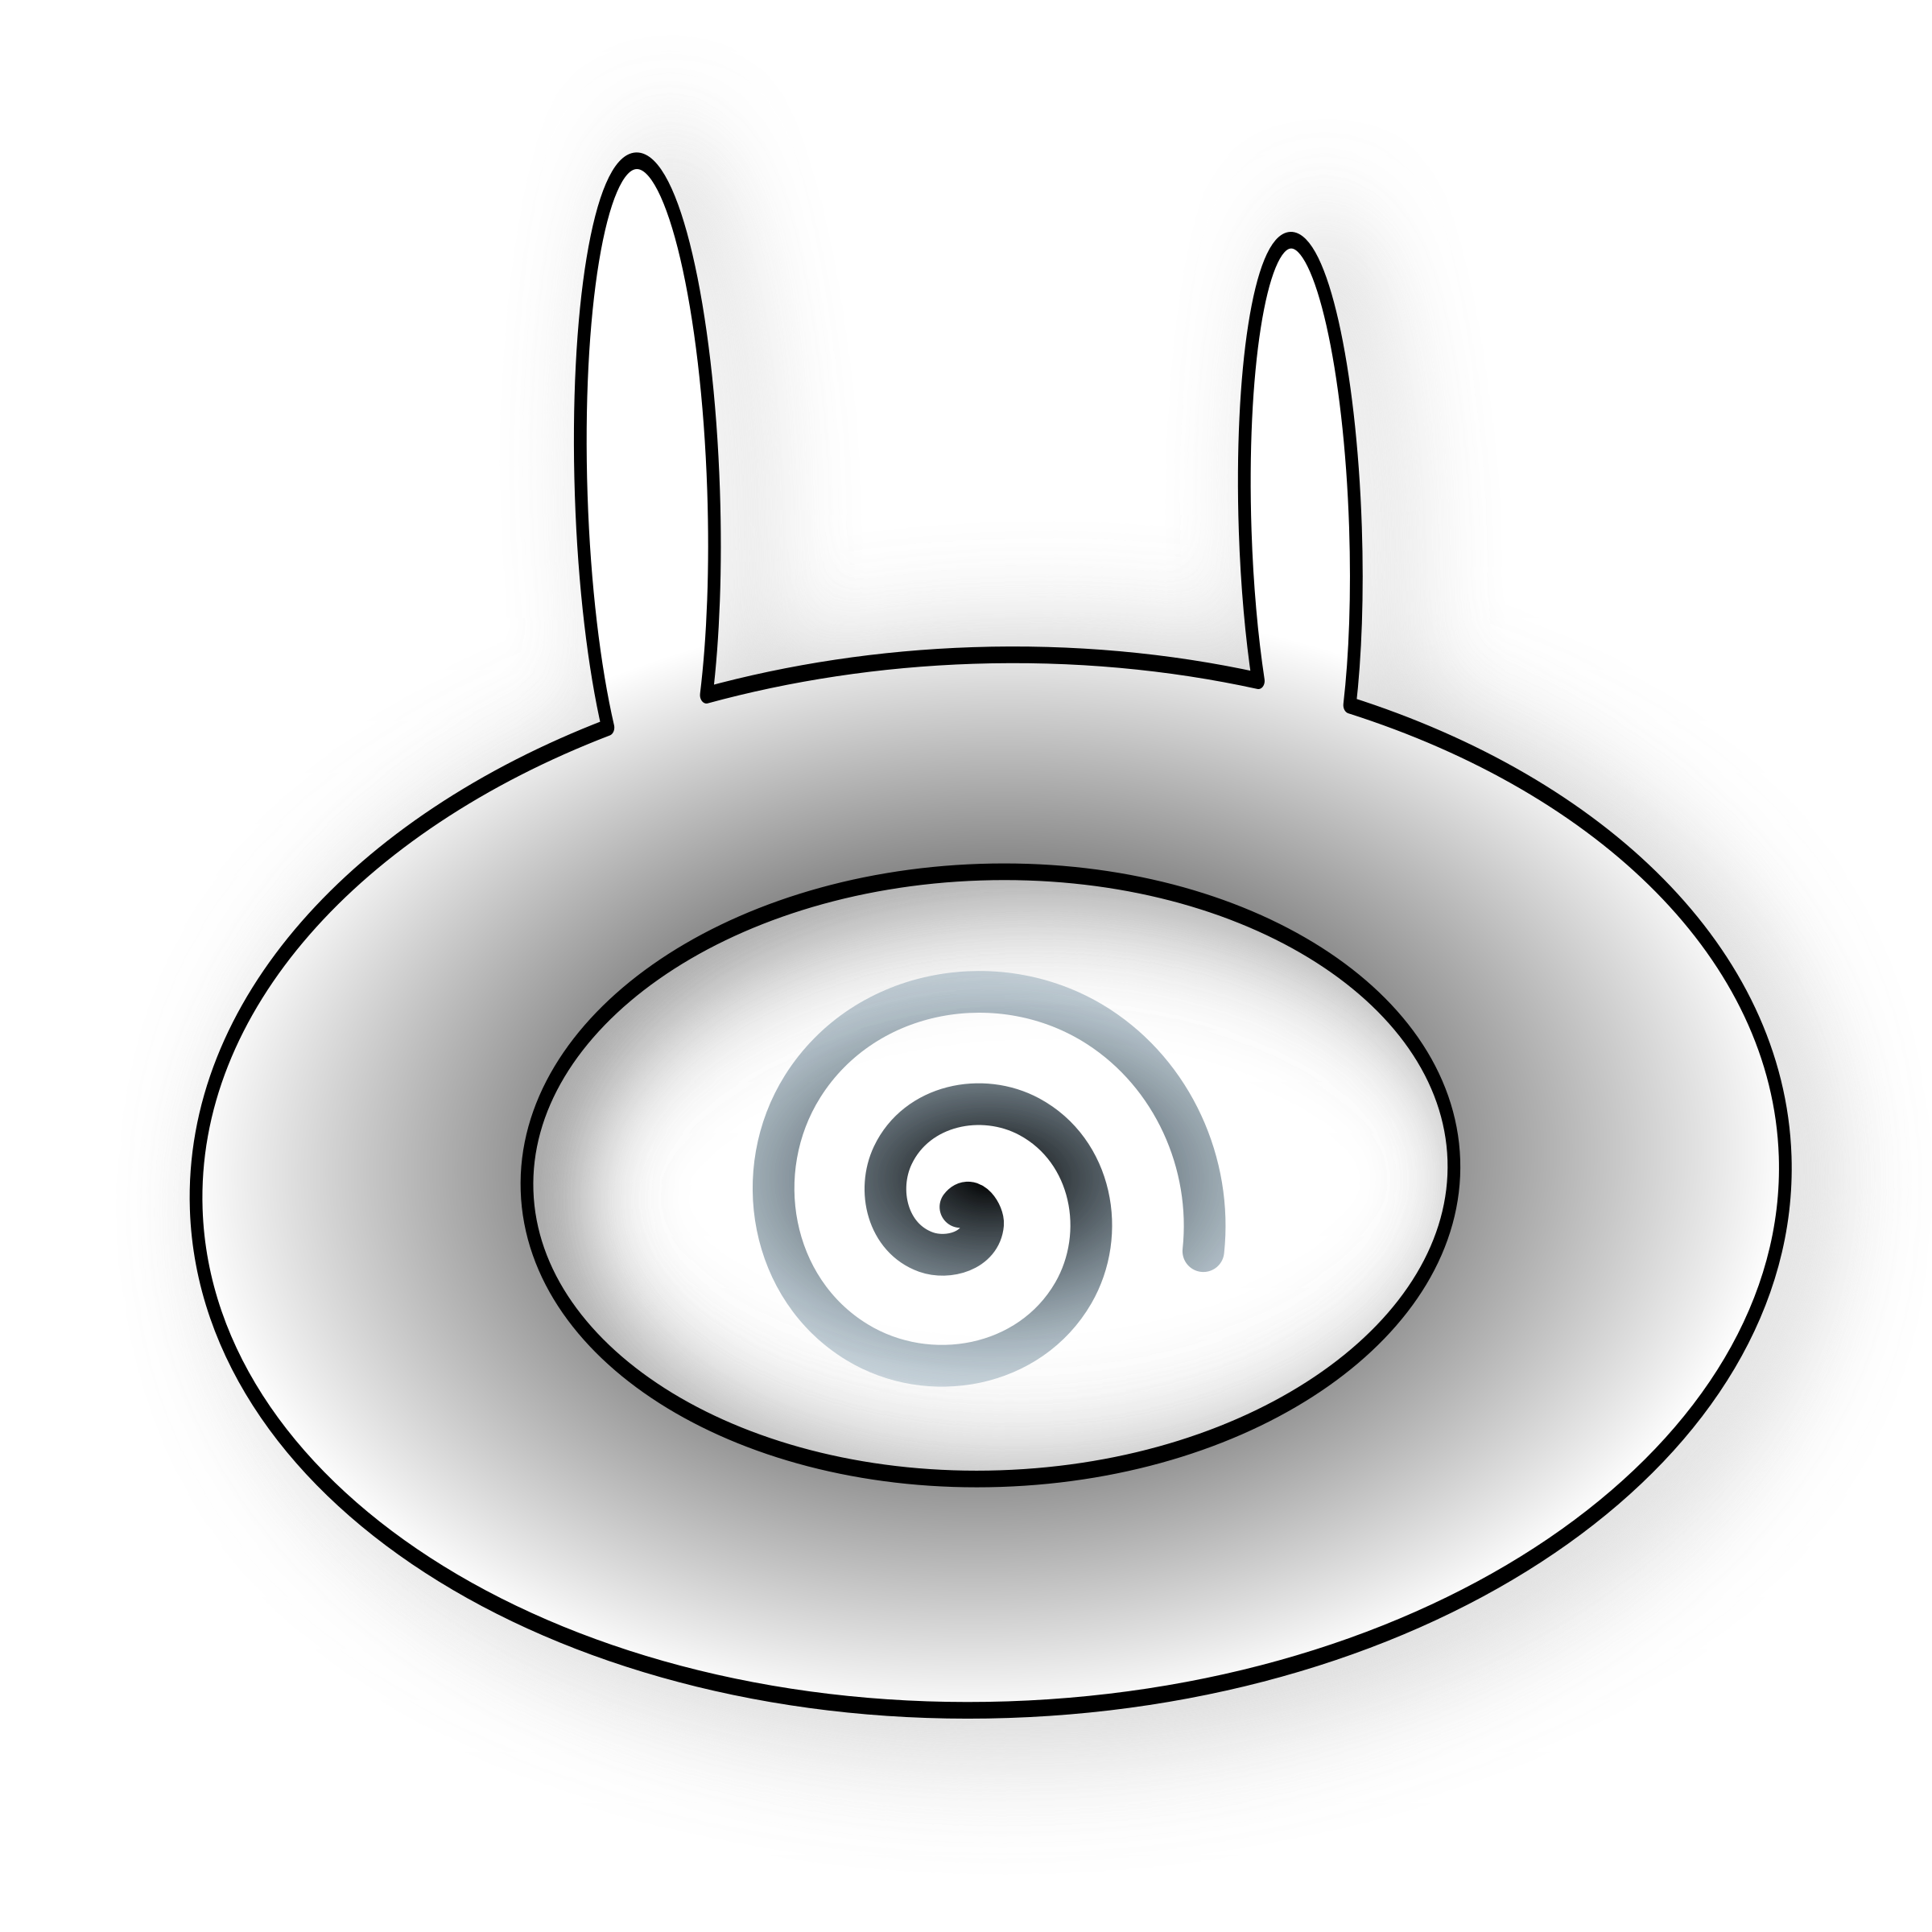 Bunnies clipart eye.